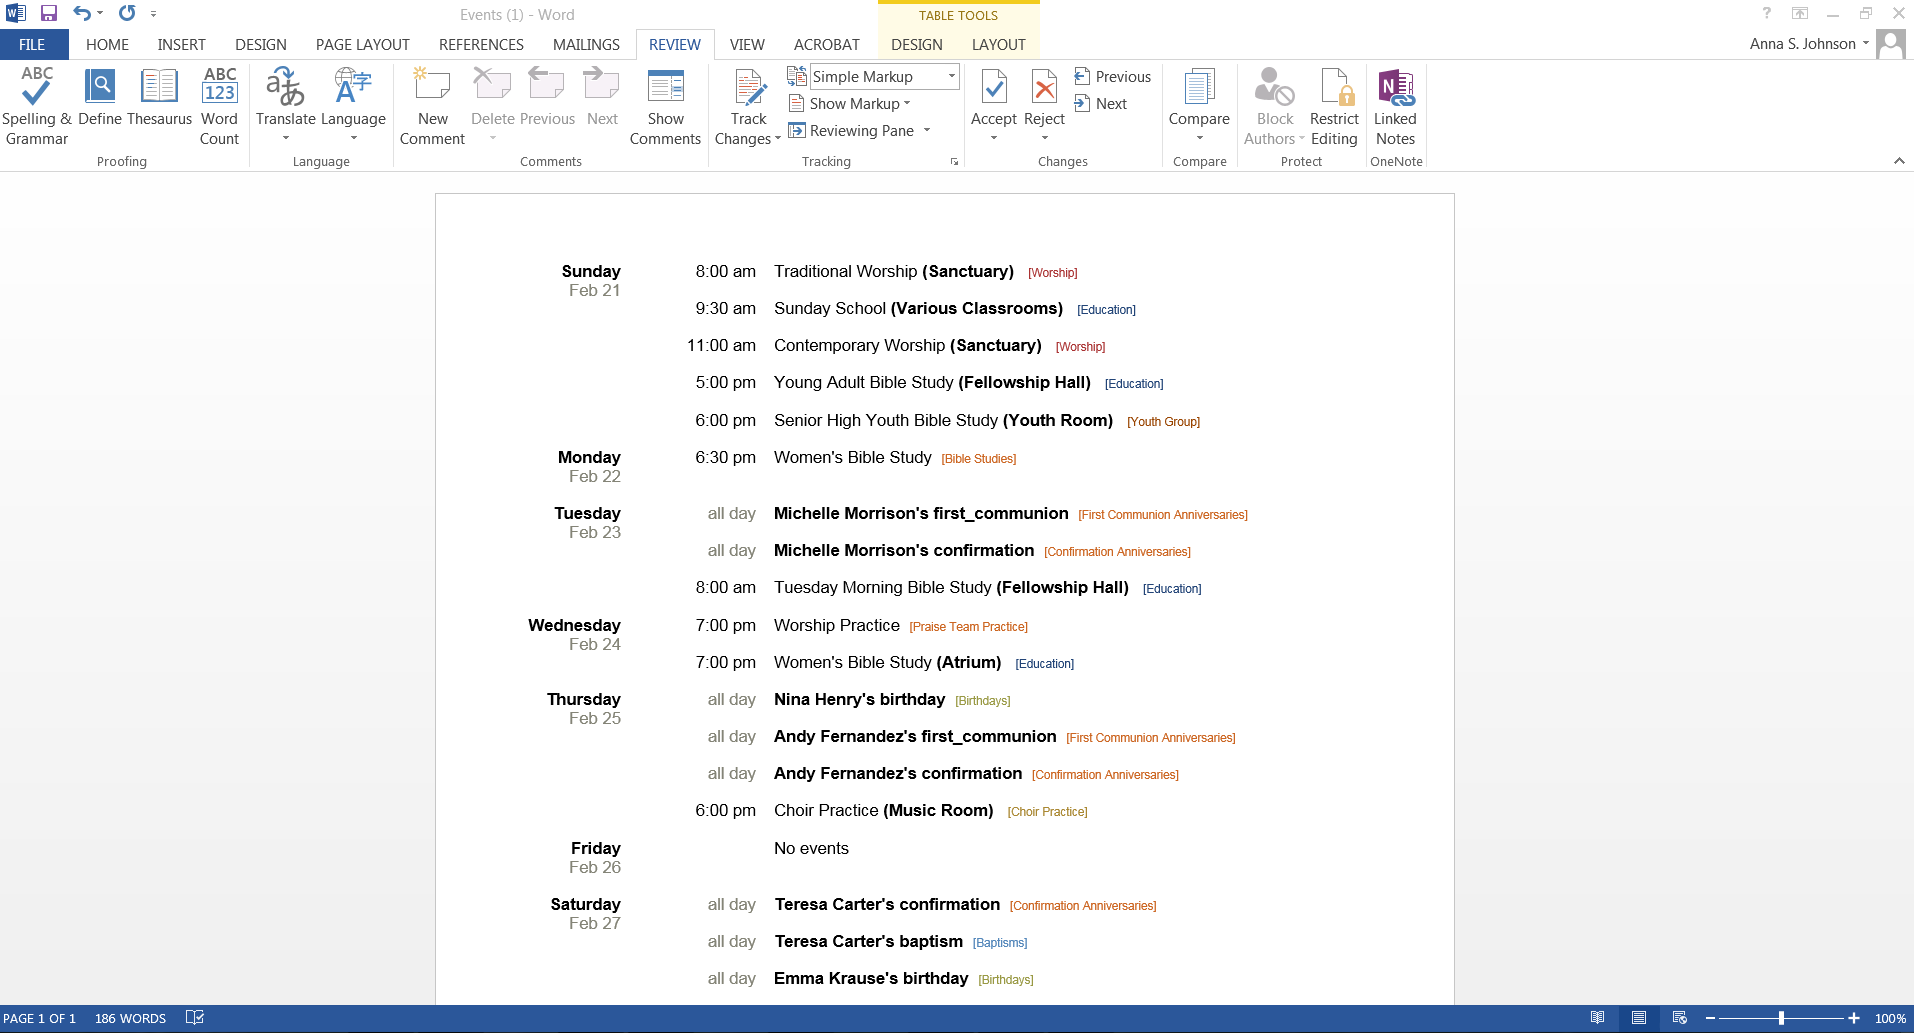 events_calendar_word_weekly_view.png